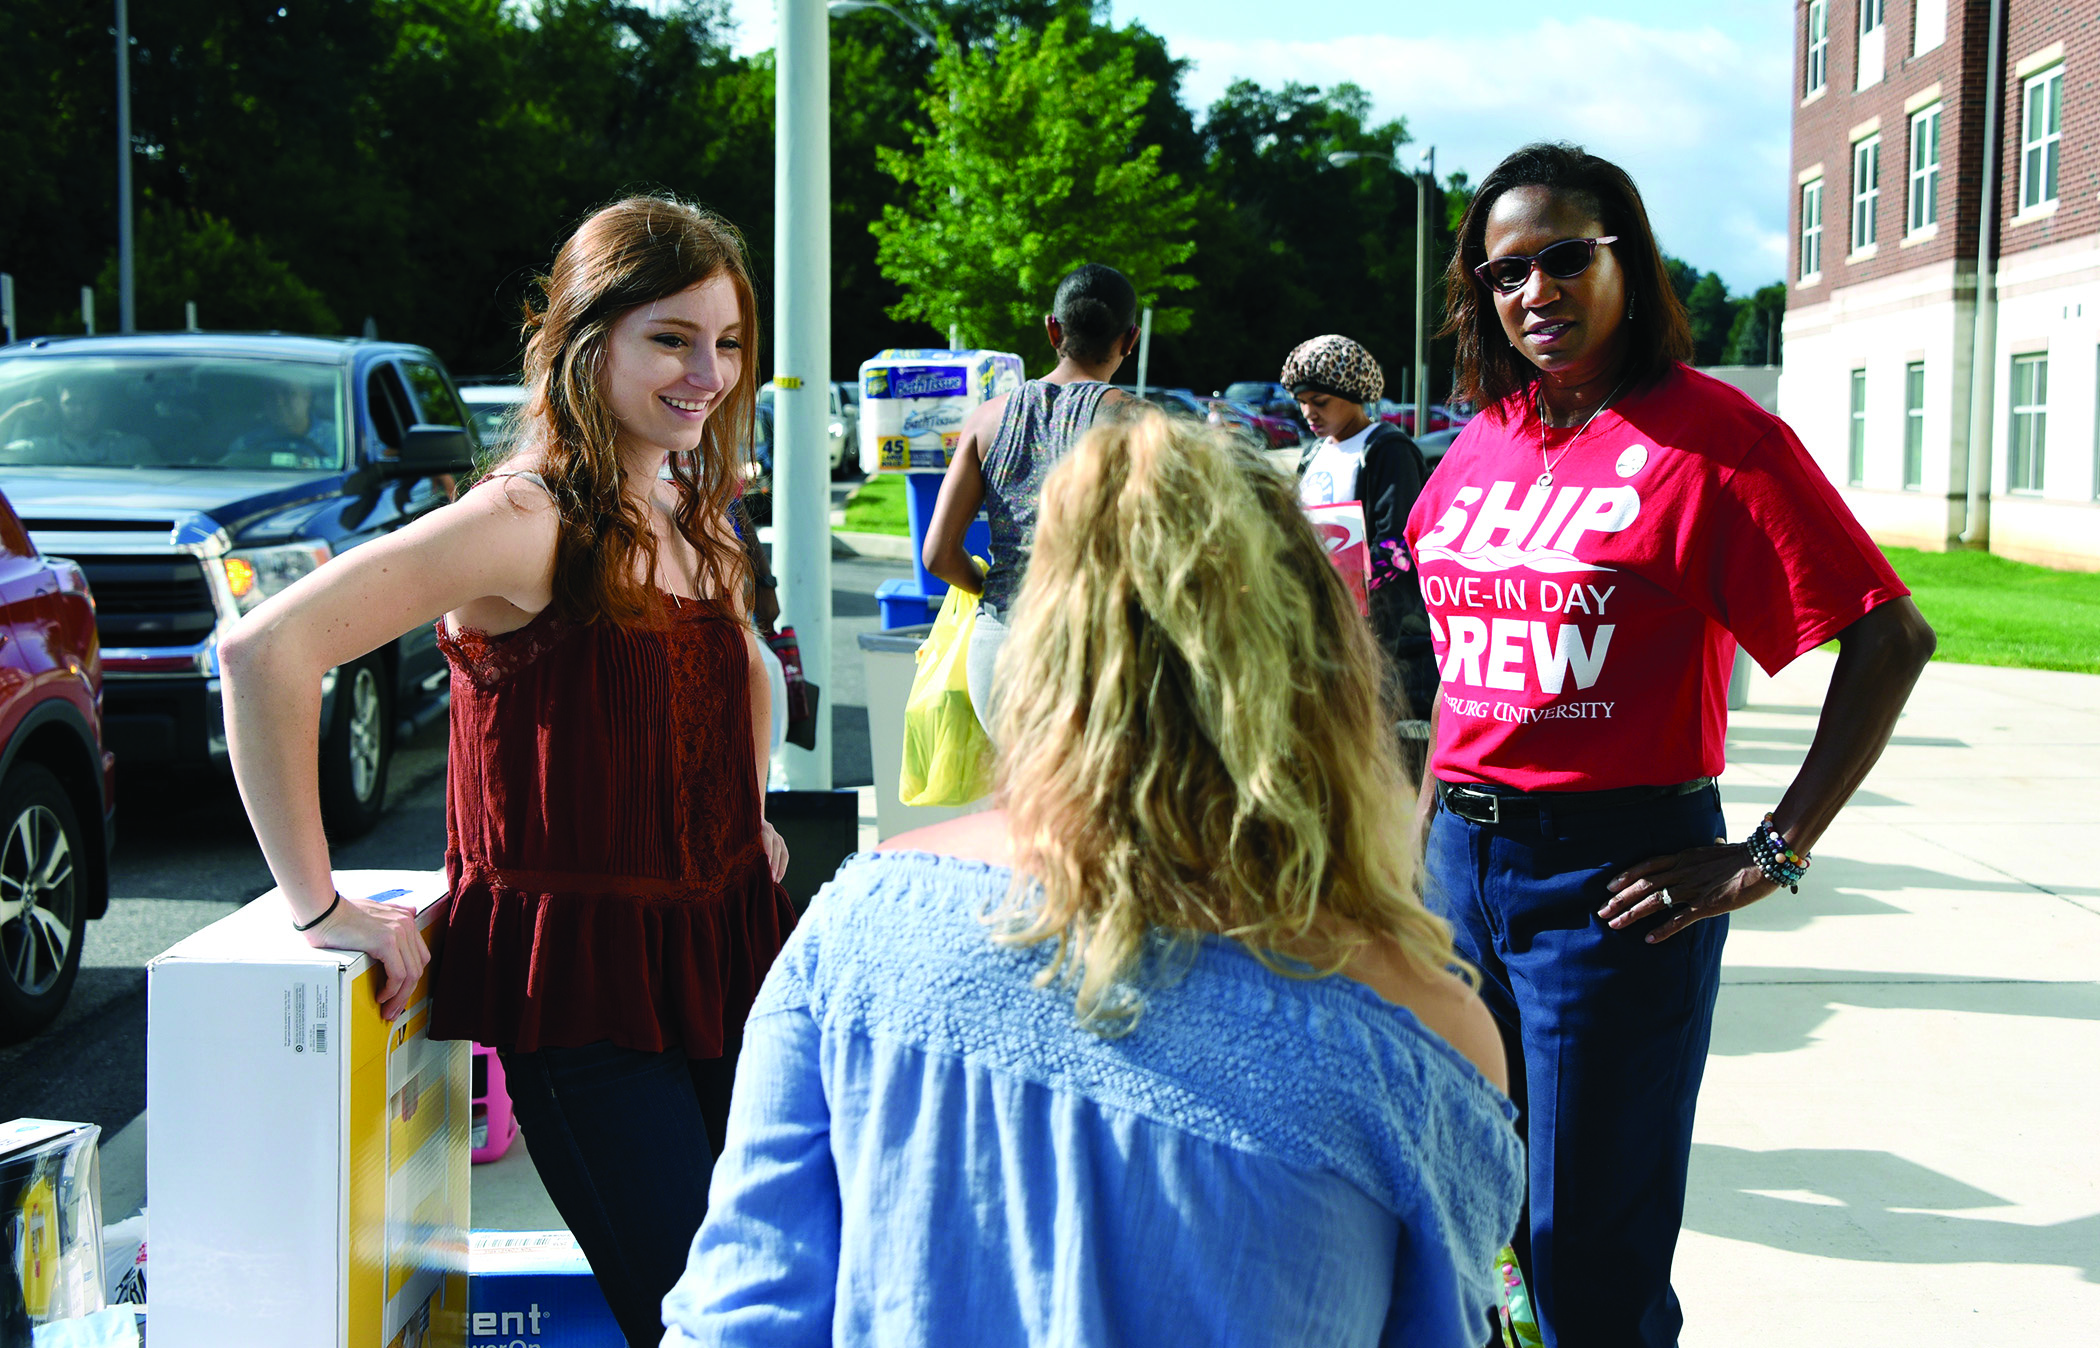 Getting to know students during move-in day.